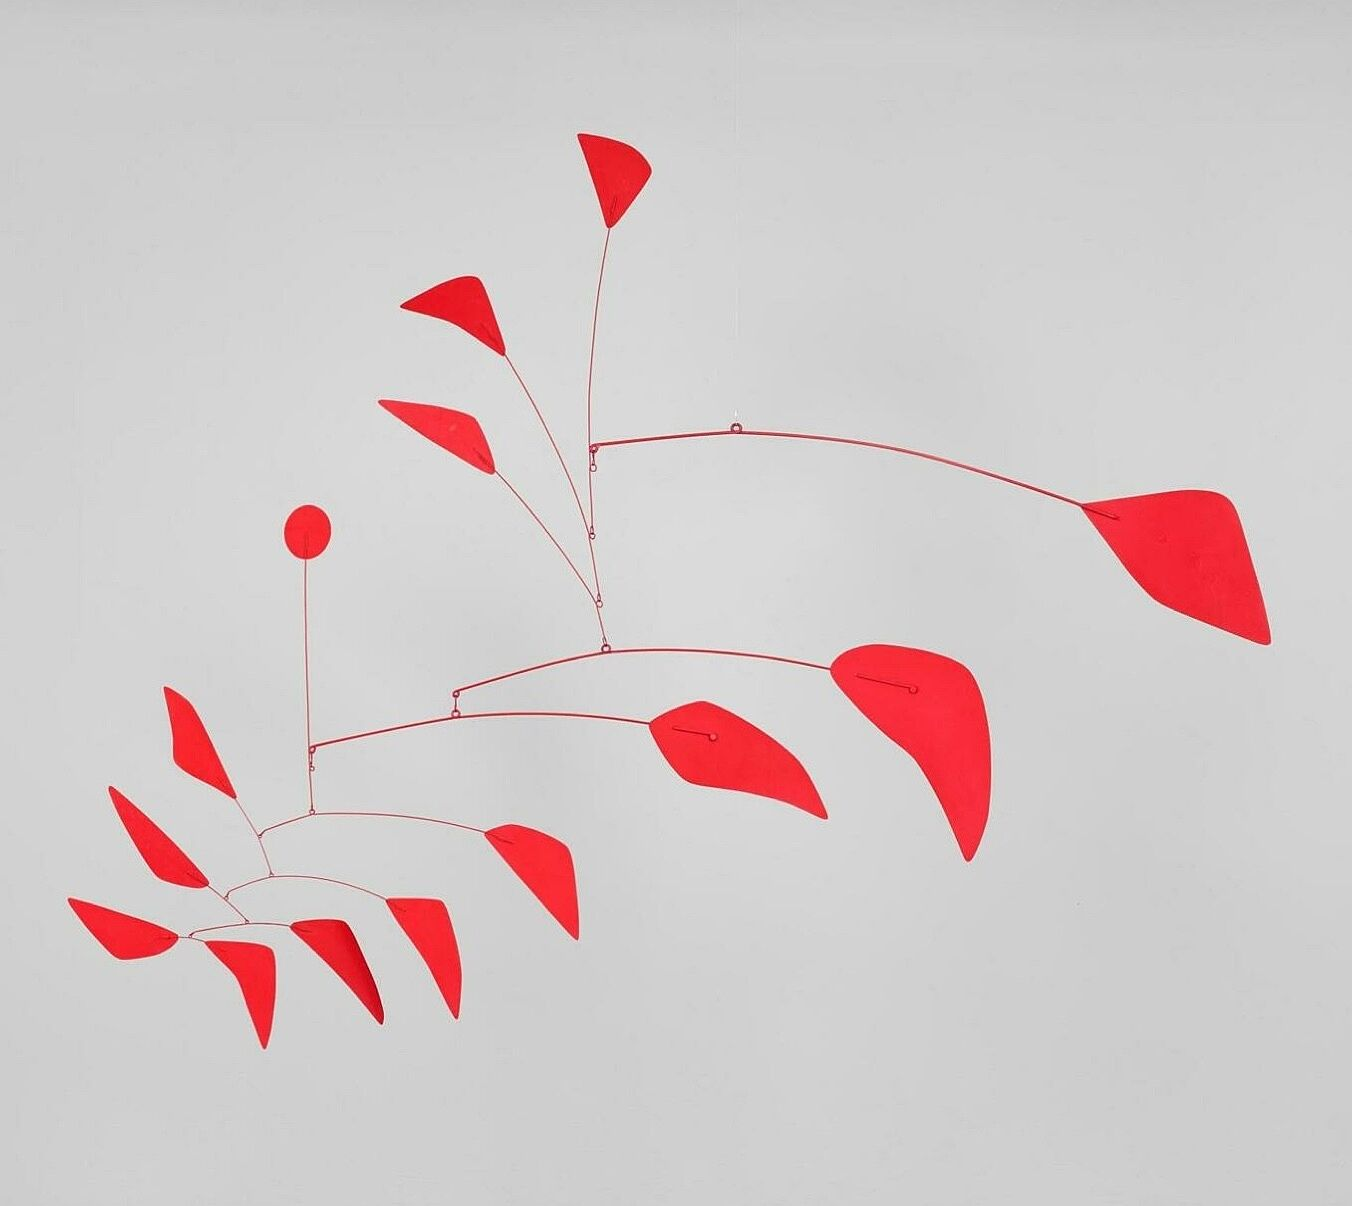 Red hanging mobile on a gray background.